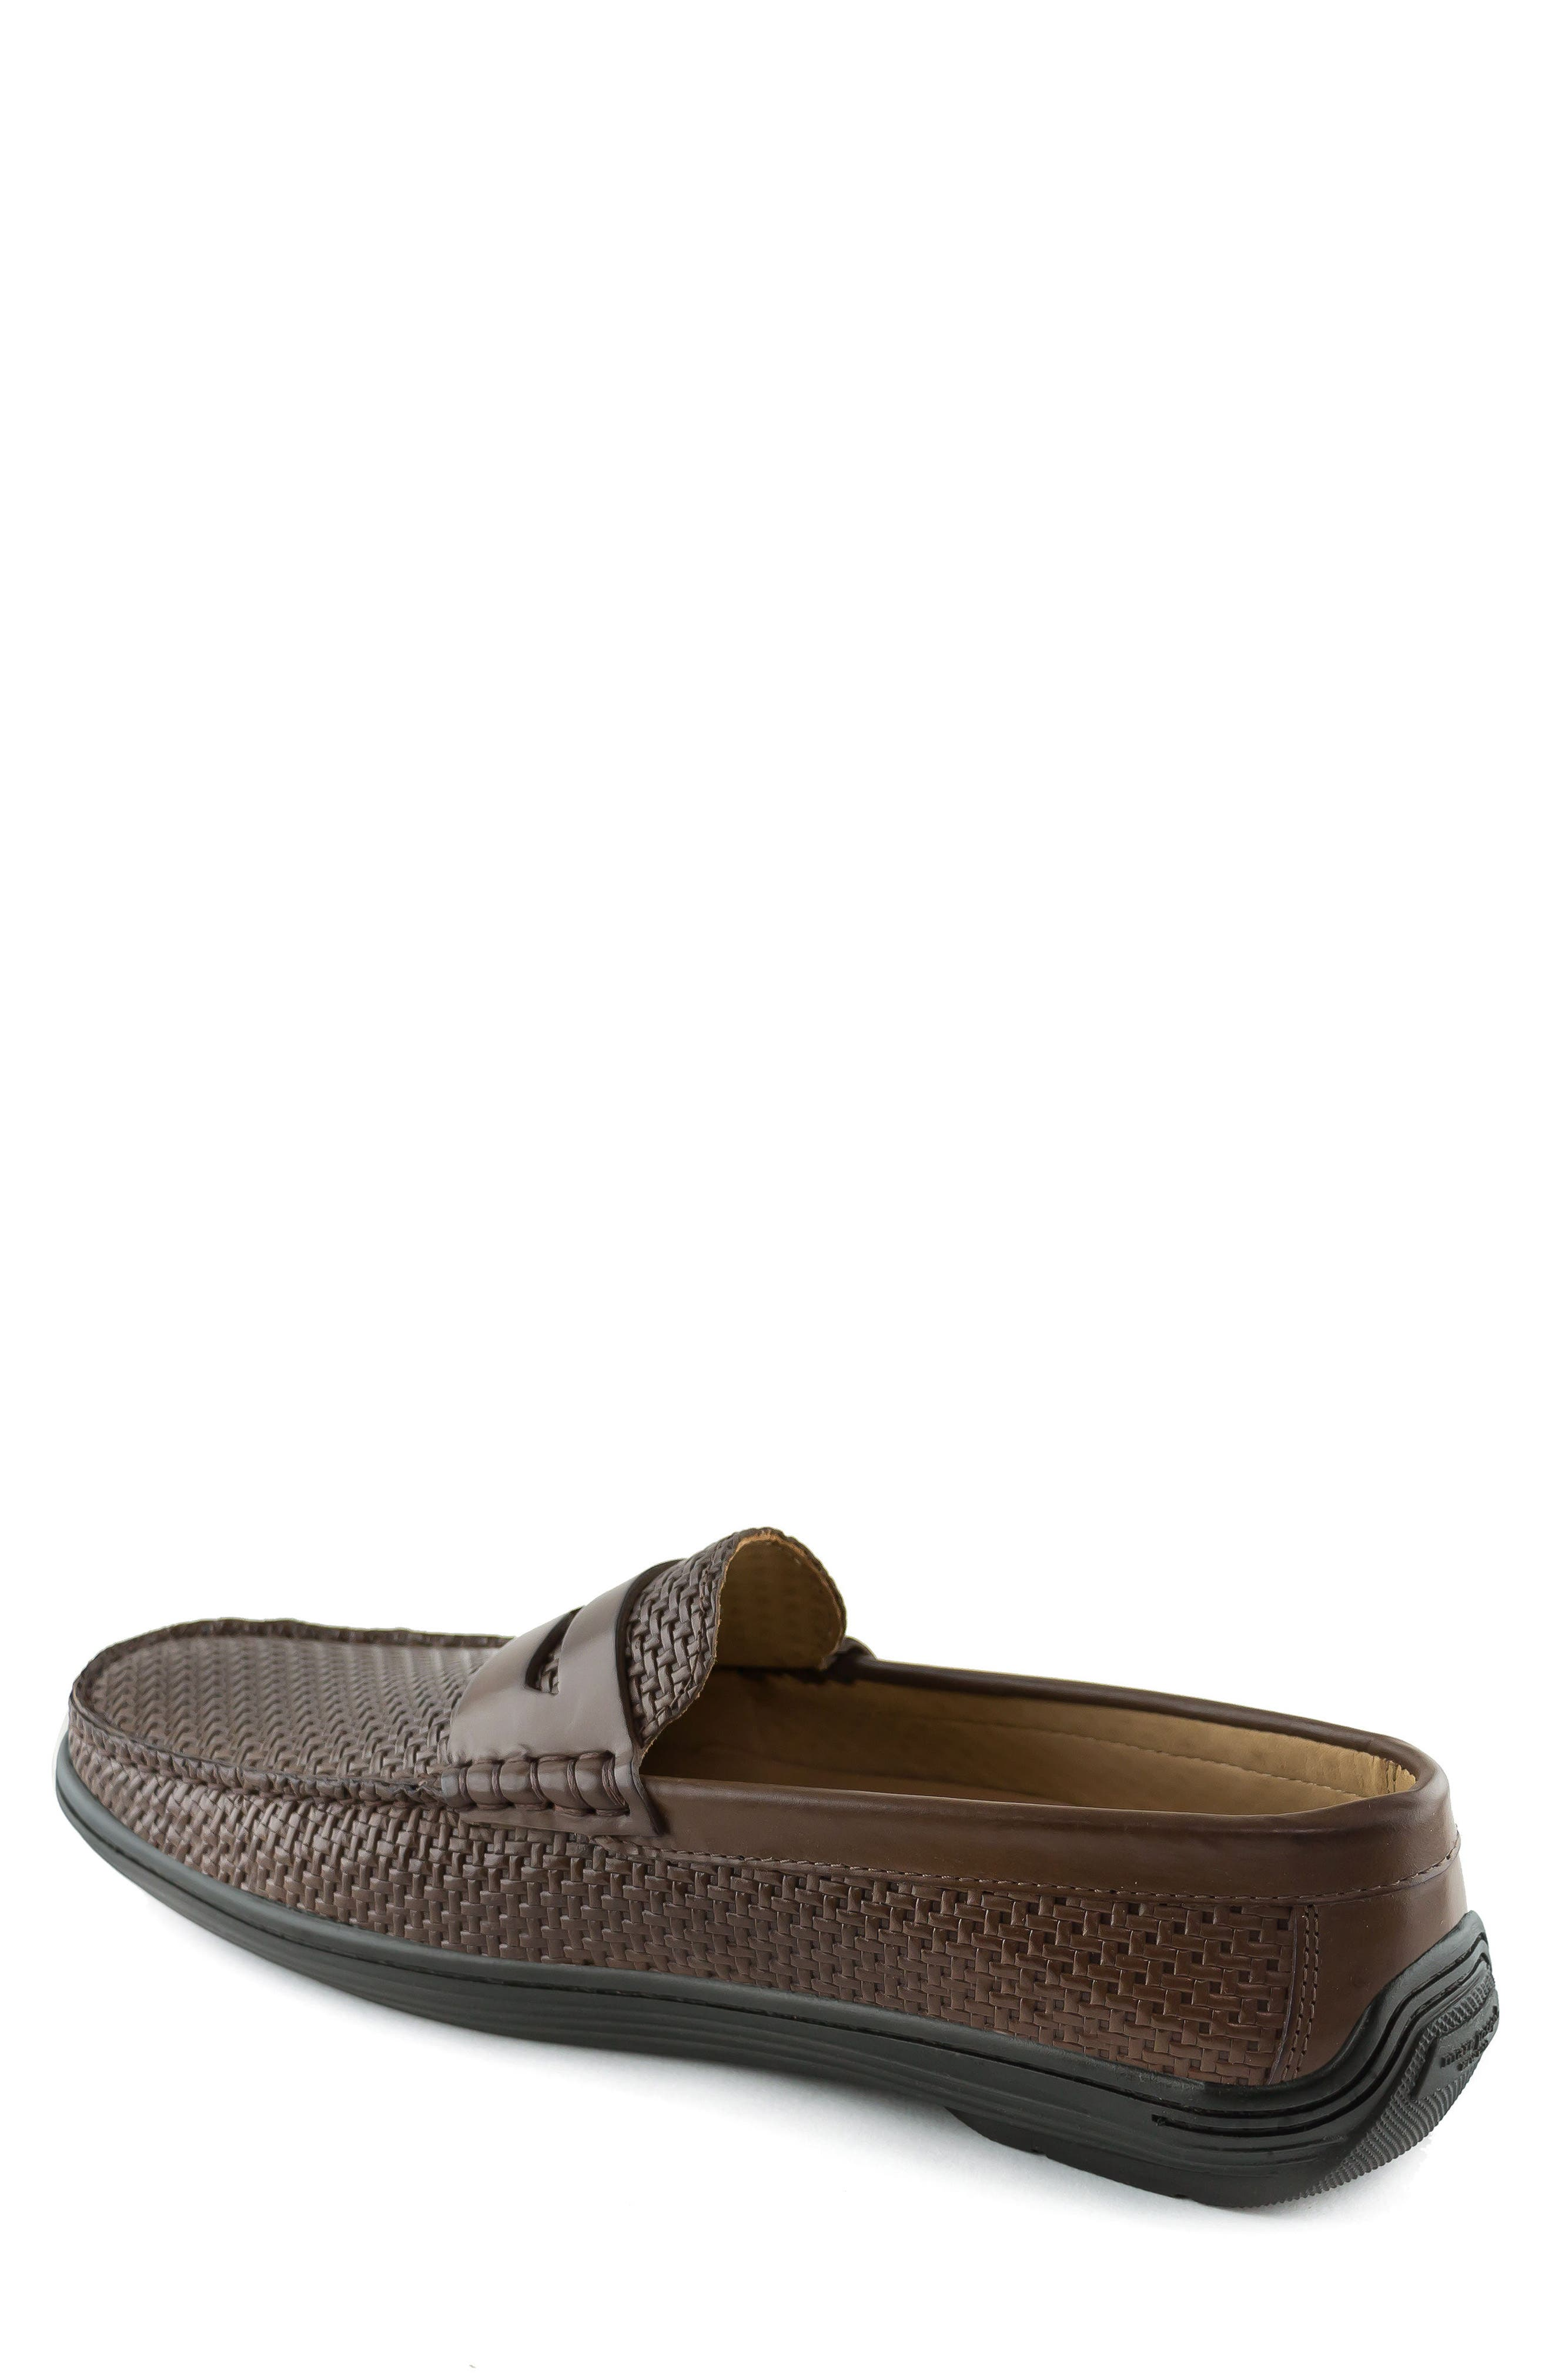 Atlantic Penny Loafer,                             Alternate thumbnail 12, color,